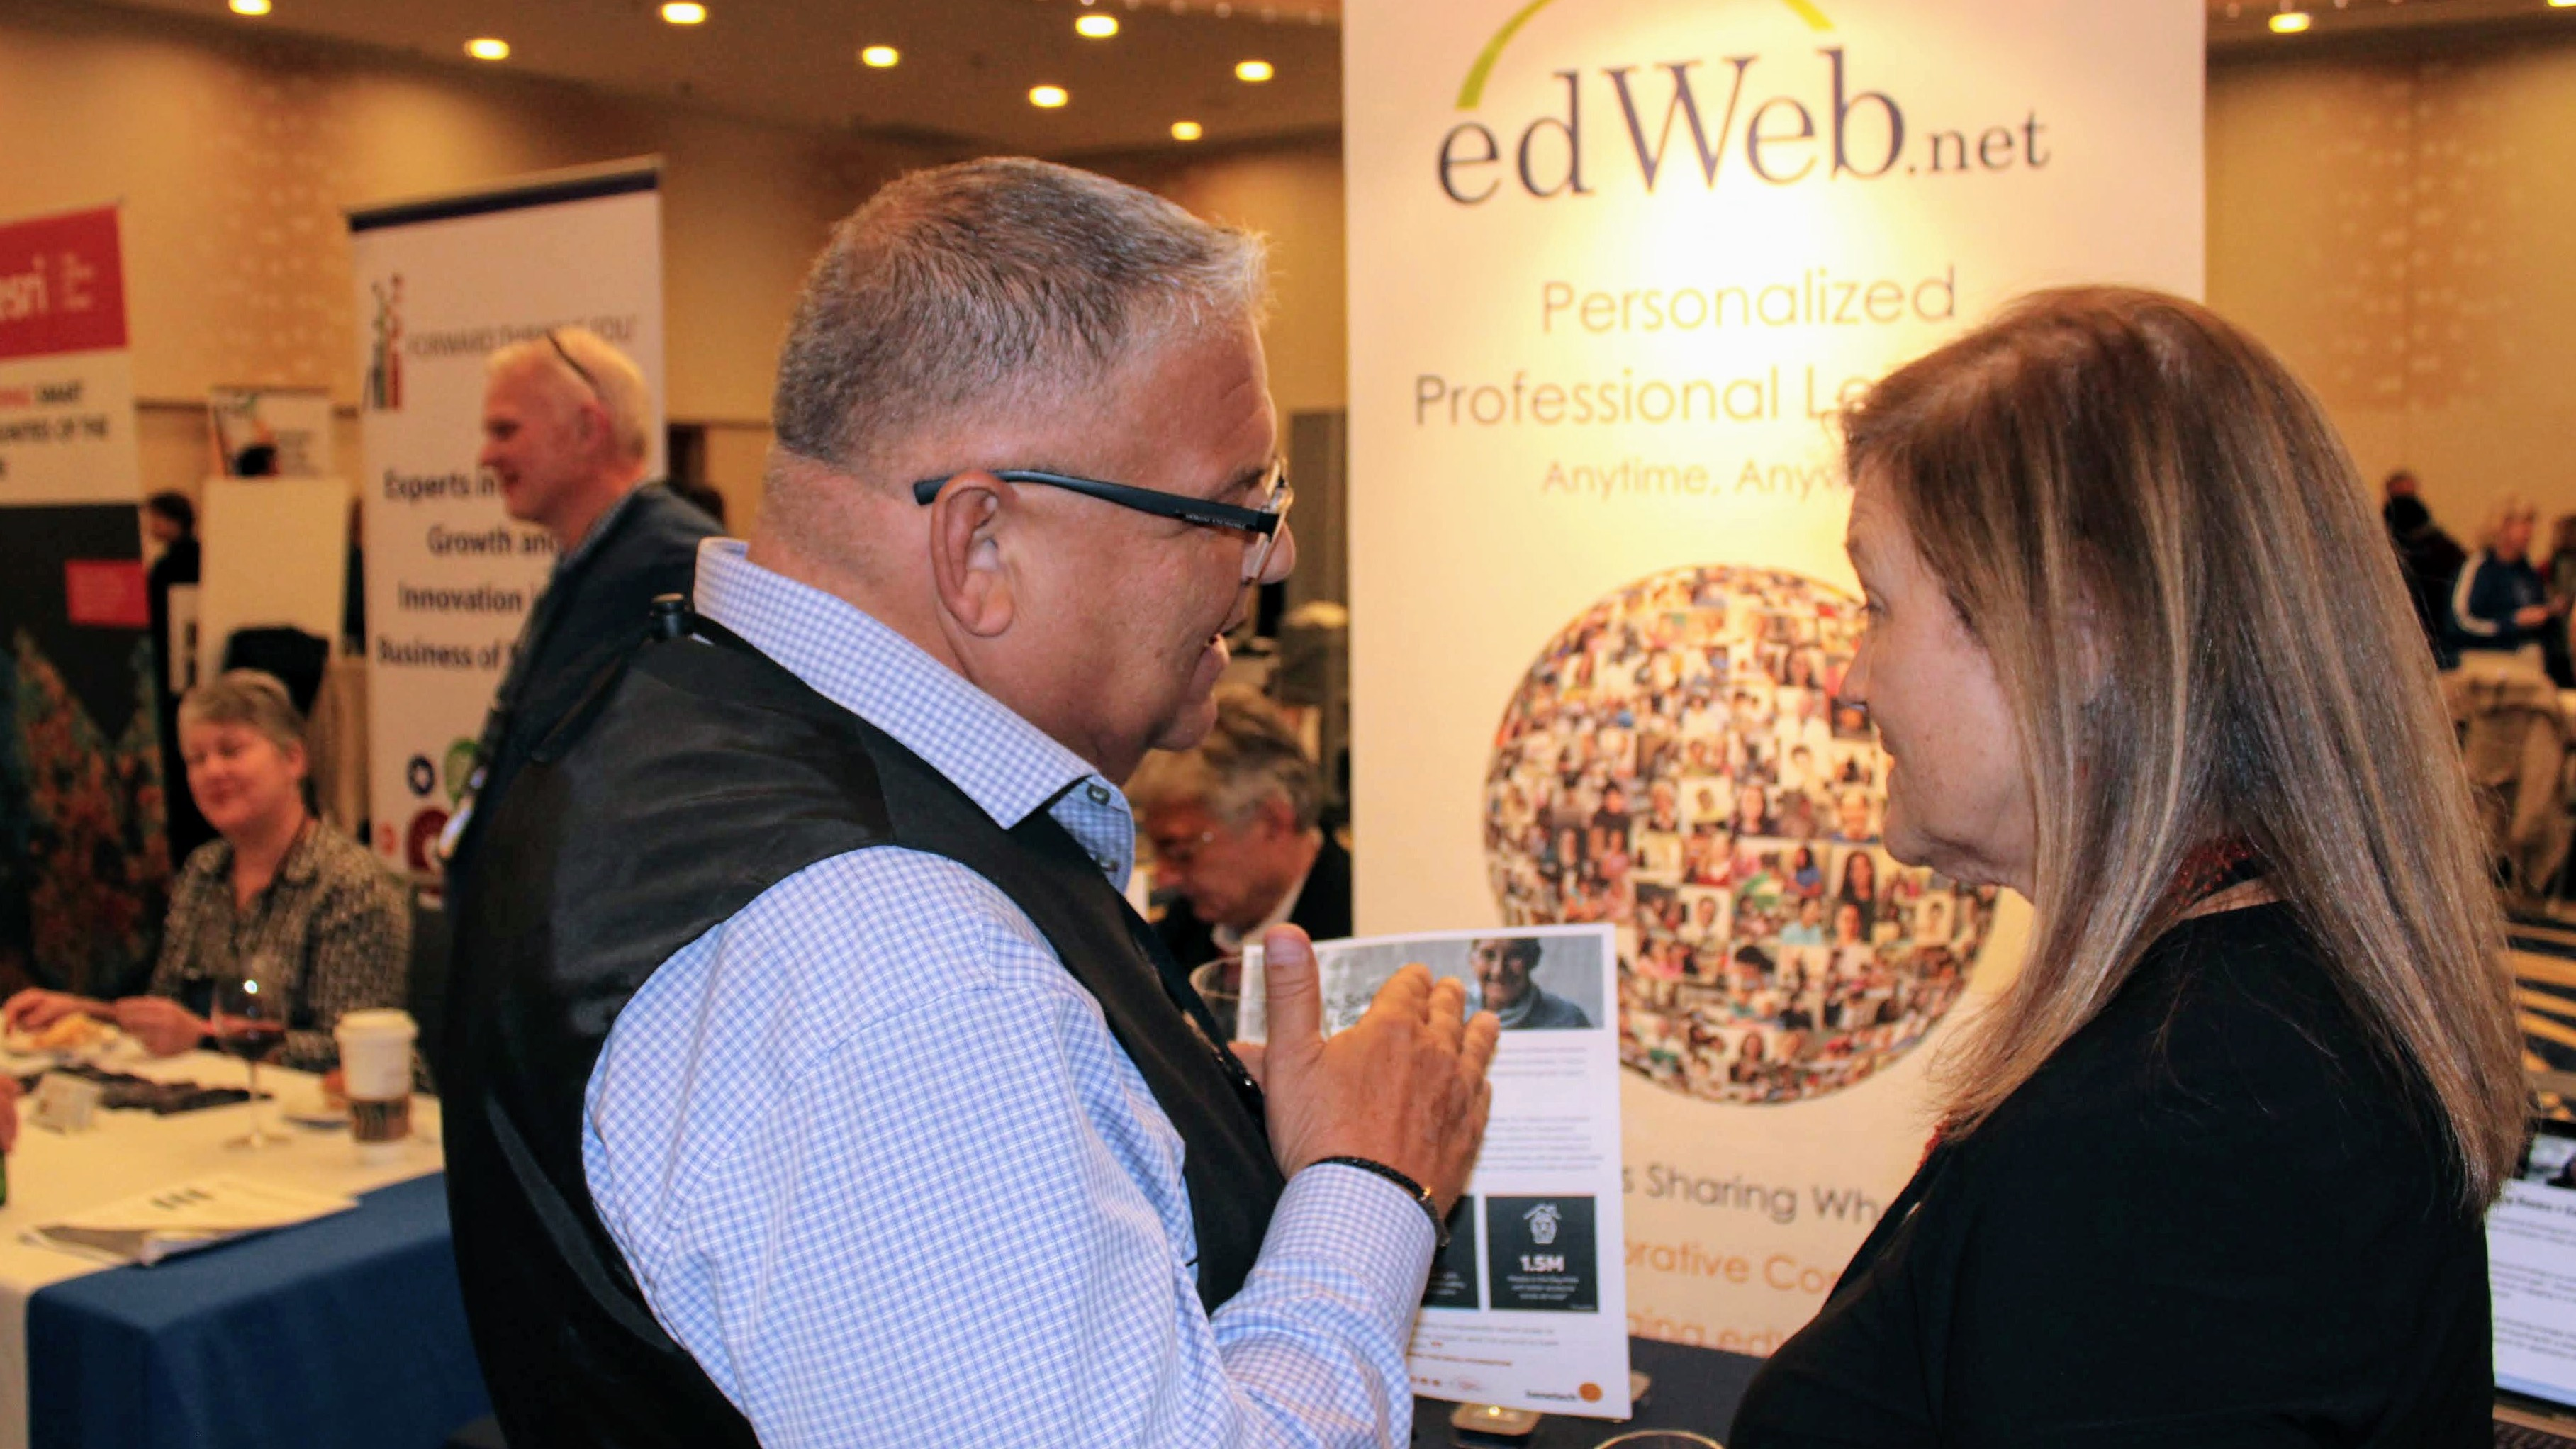 Partner reception conversation with edWeb banner